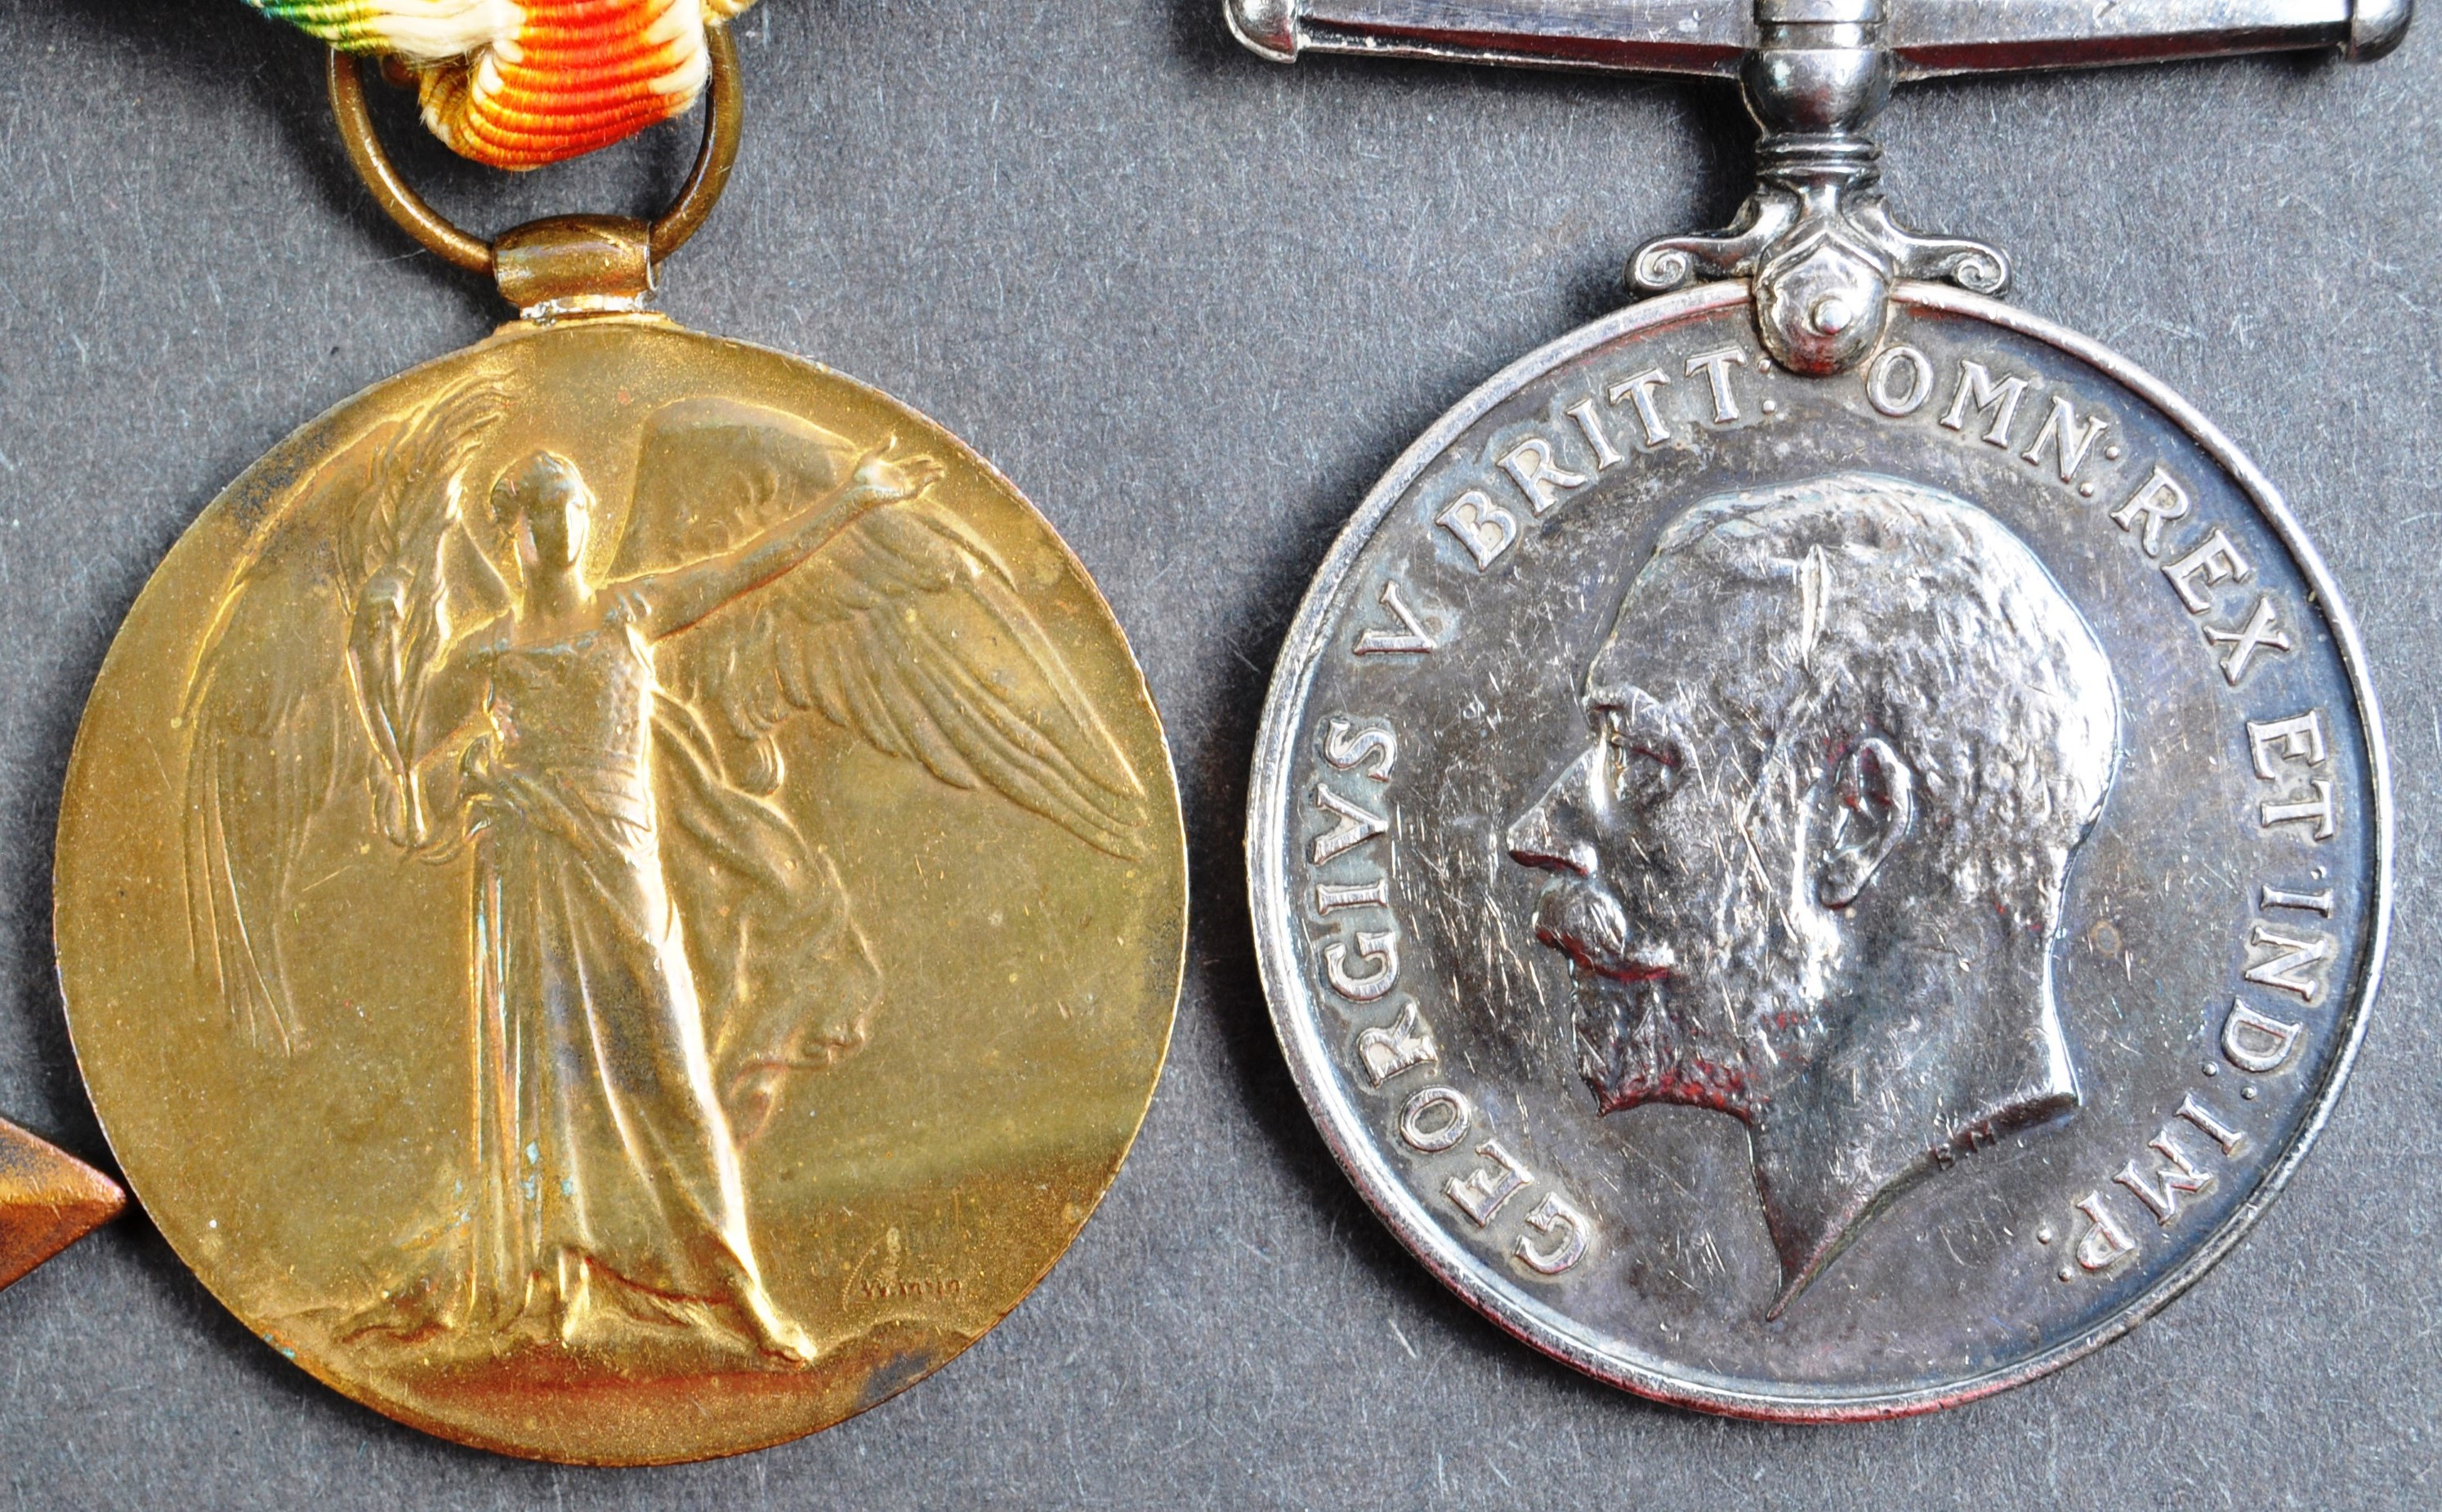 WWI FIRST WORLD WAR MEDAL GROUP - LEADING SEAMAN ROYAL NAVY - Image 3 of 10